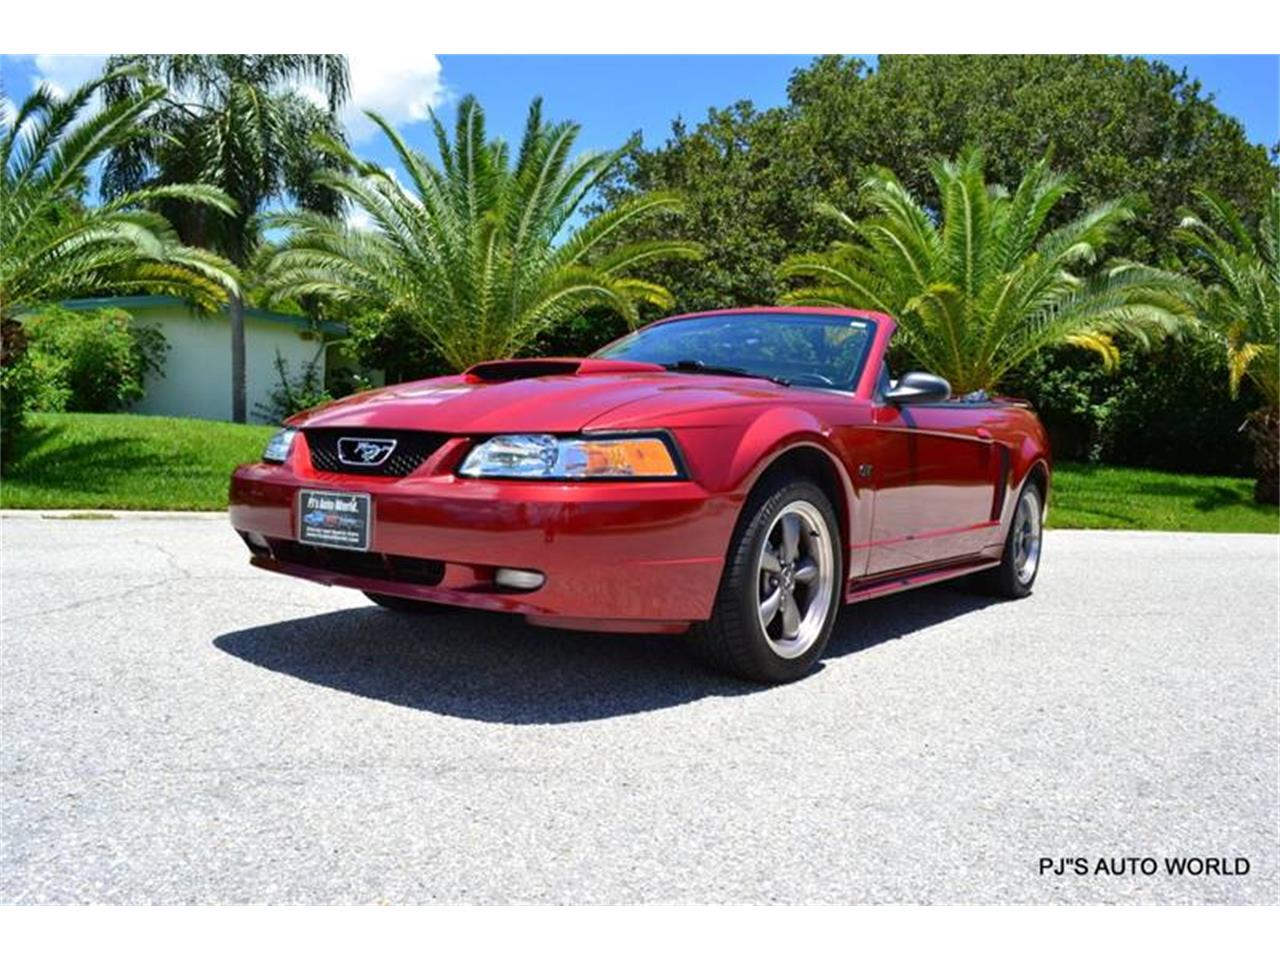 Large Picture of 2003 Ford Mustang - $10,900.00 - LEYO